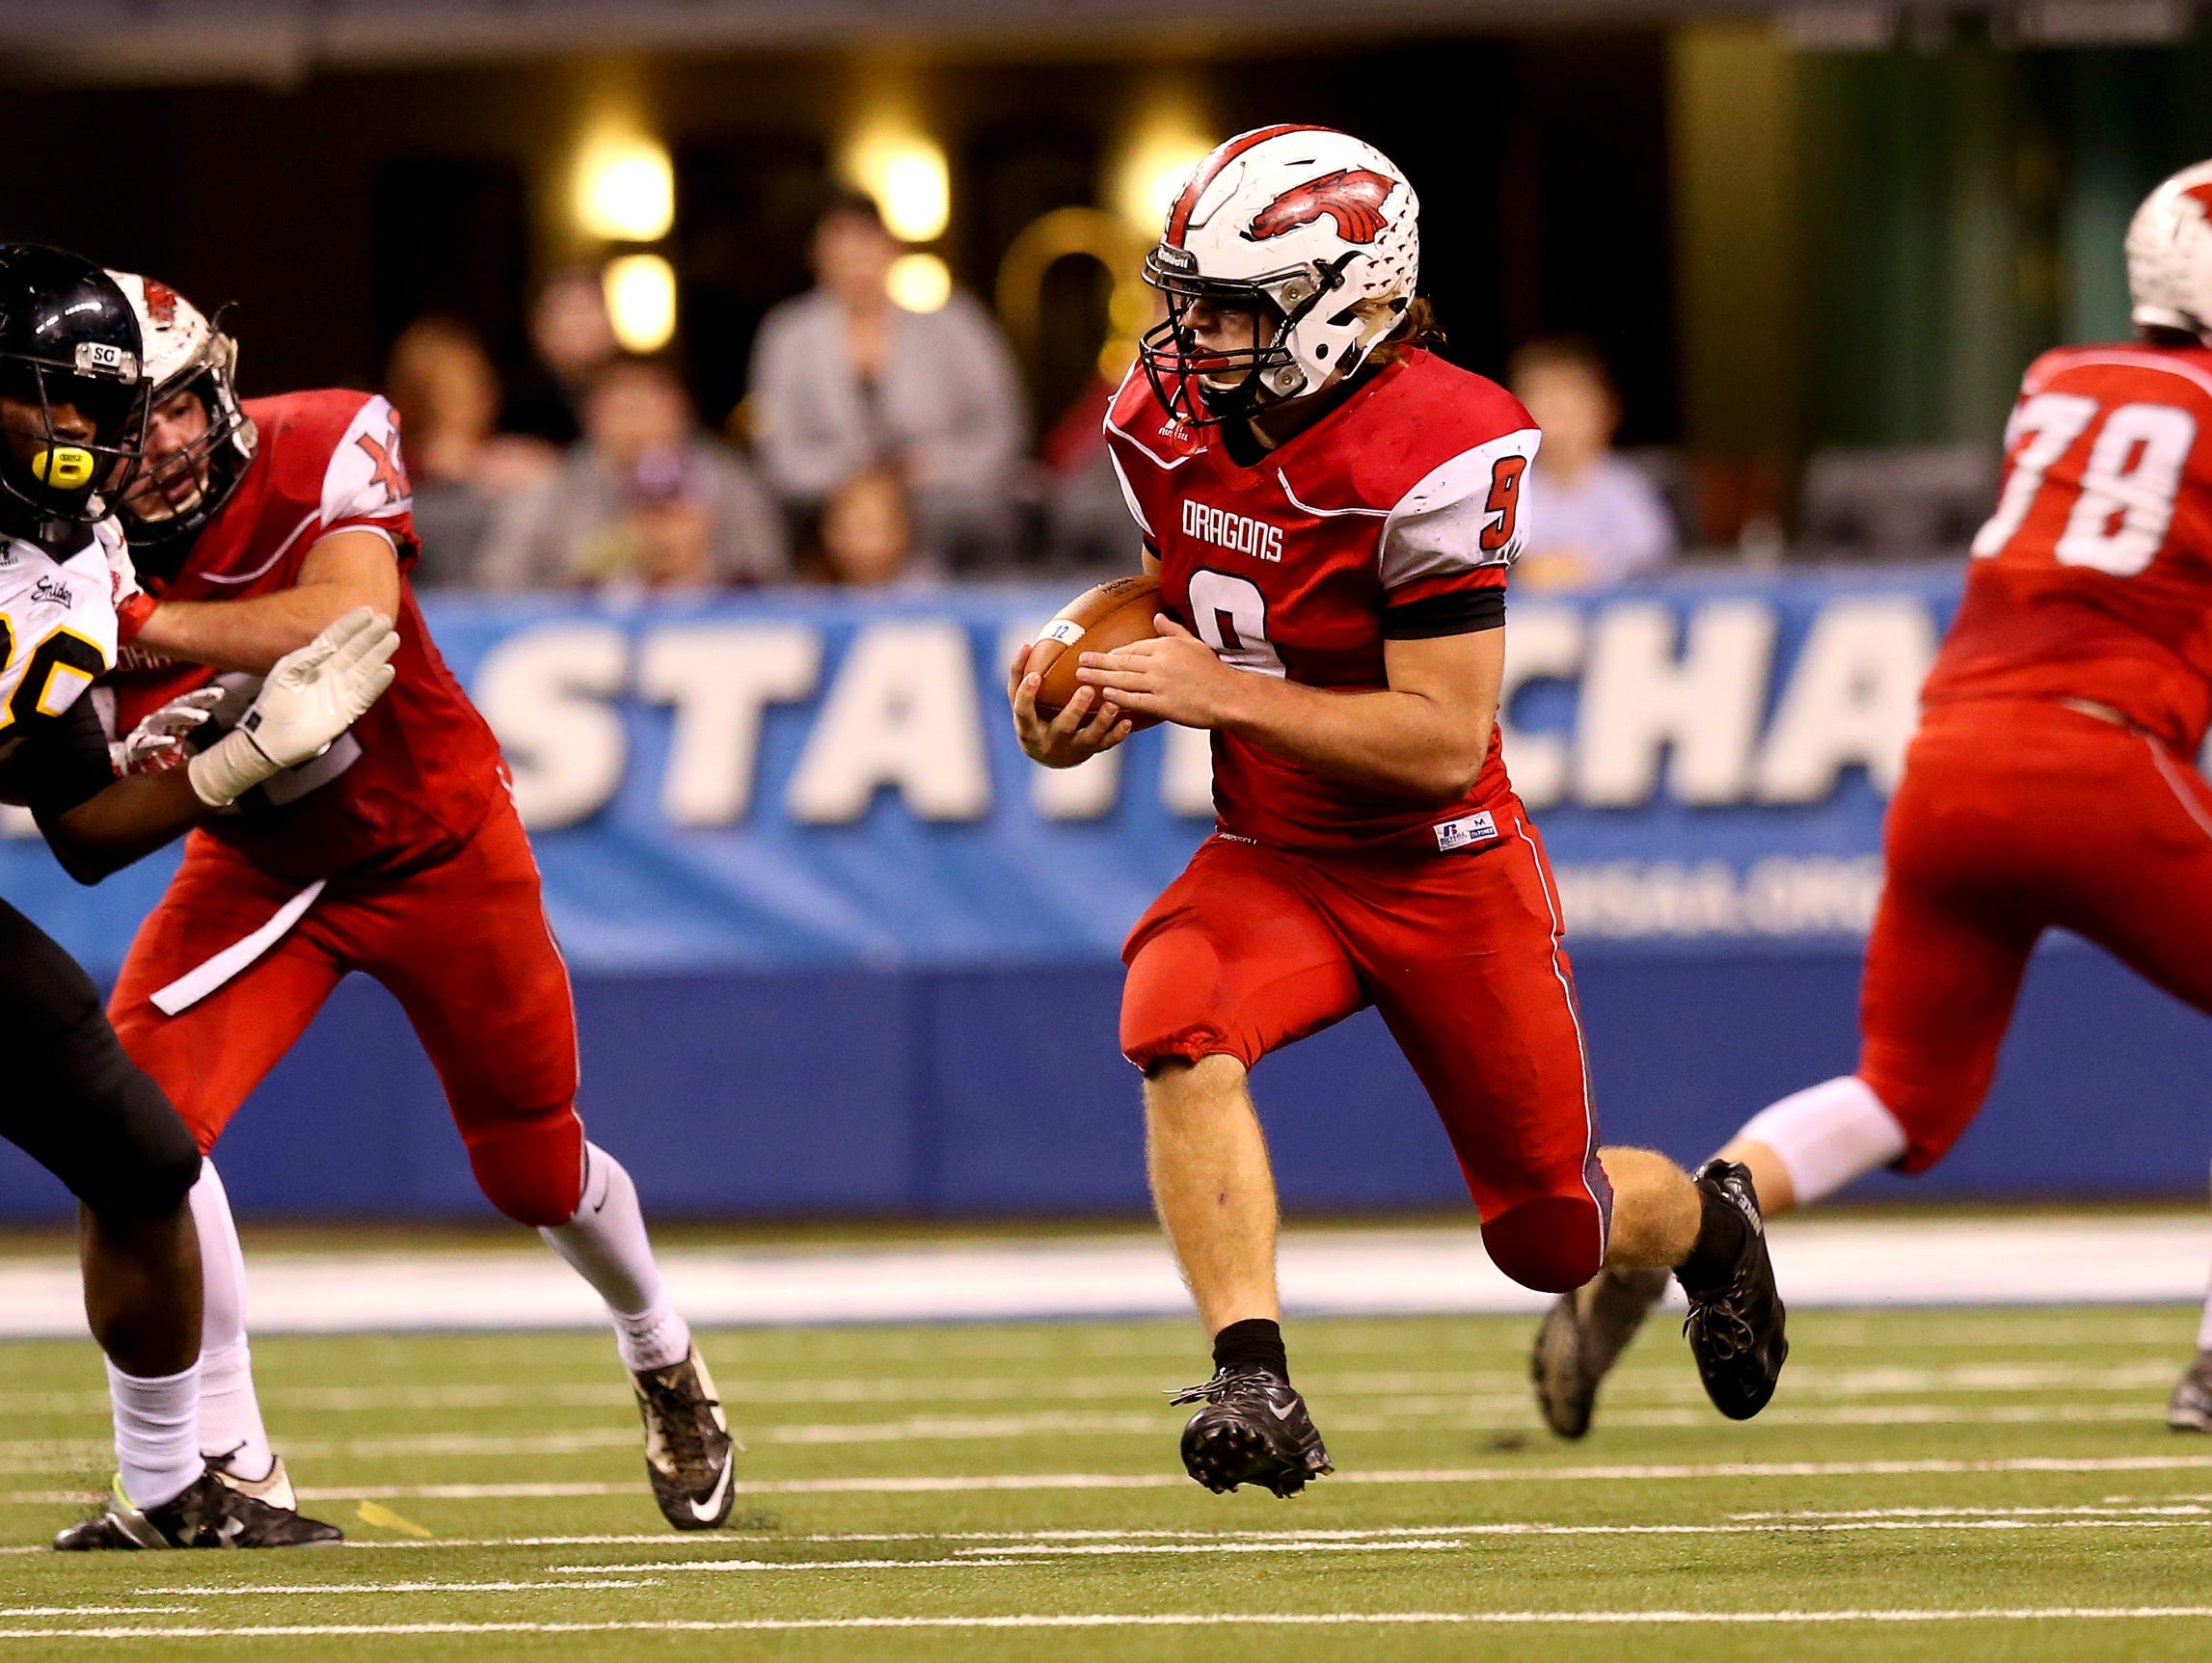 New Palestine's Adam Brickens looks for space during the Dragons' Class 5A state title loss last season.